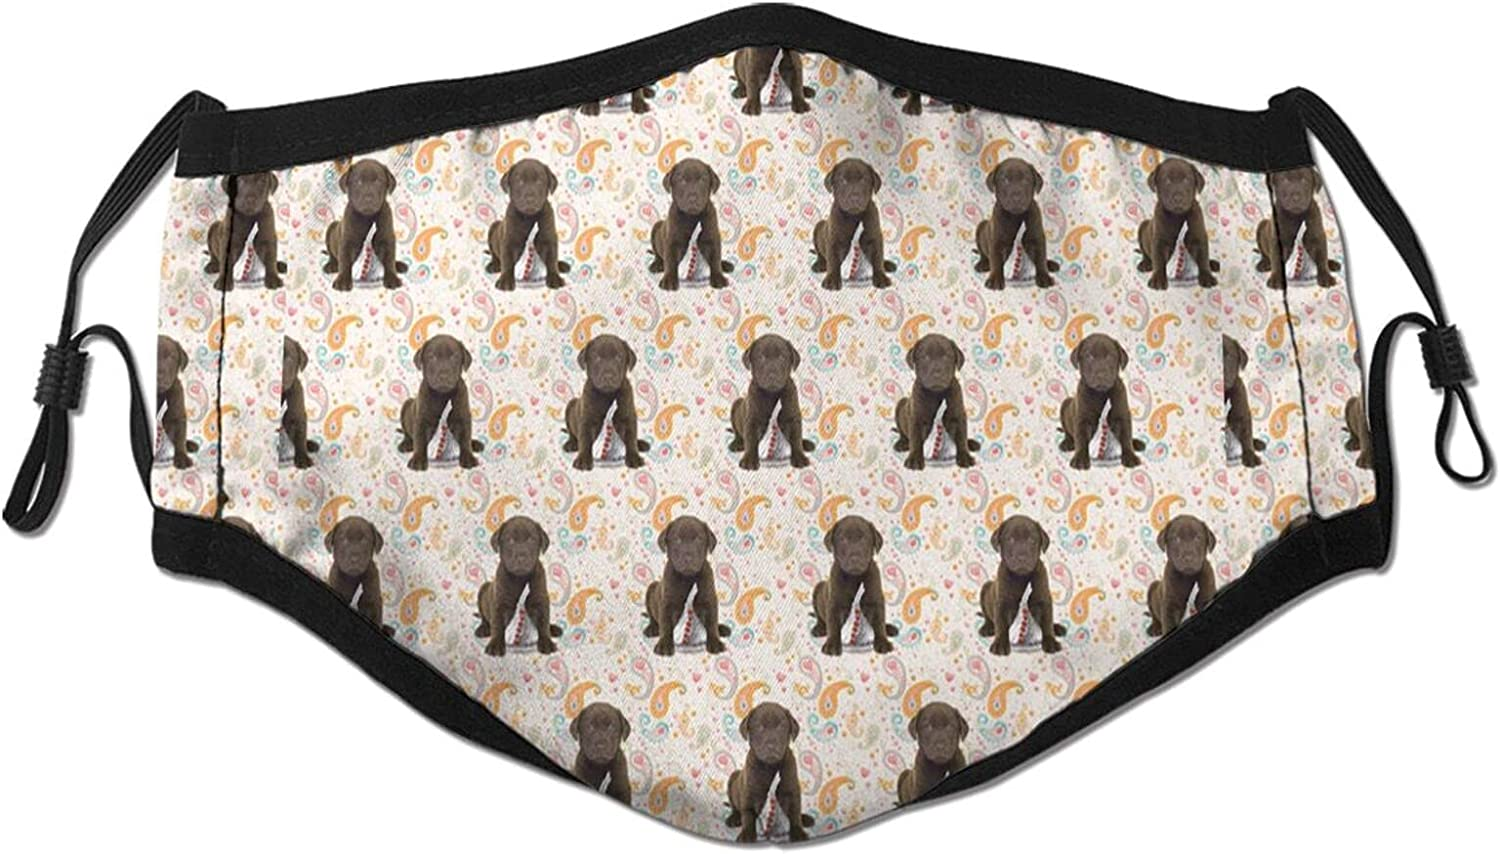 Chocolate Lab Dog Adult Fashion Breathable New Max 51% OFF popularity Cover Adjustable Face